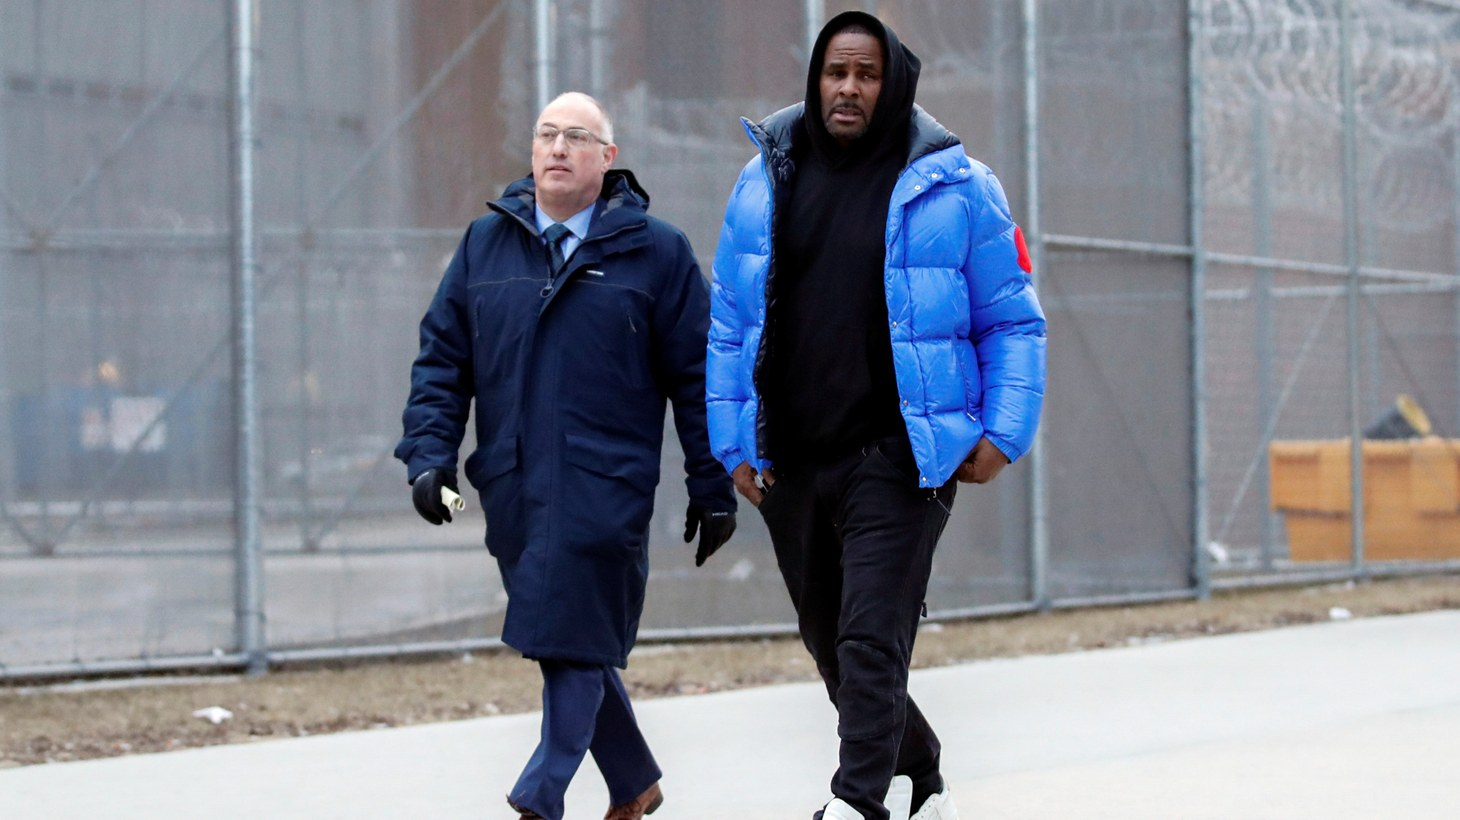 R. Kelly leaves Cook County jail with his defense attorney, Steve Greenberg in Chicago, Illinois, U.S., February 25, 2019.